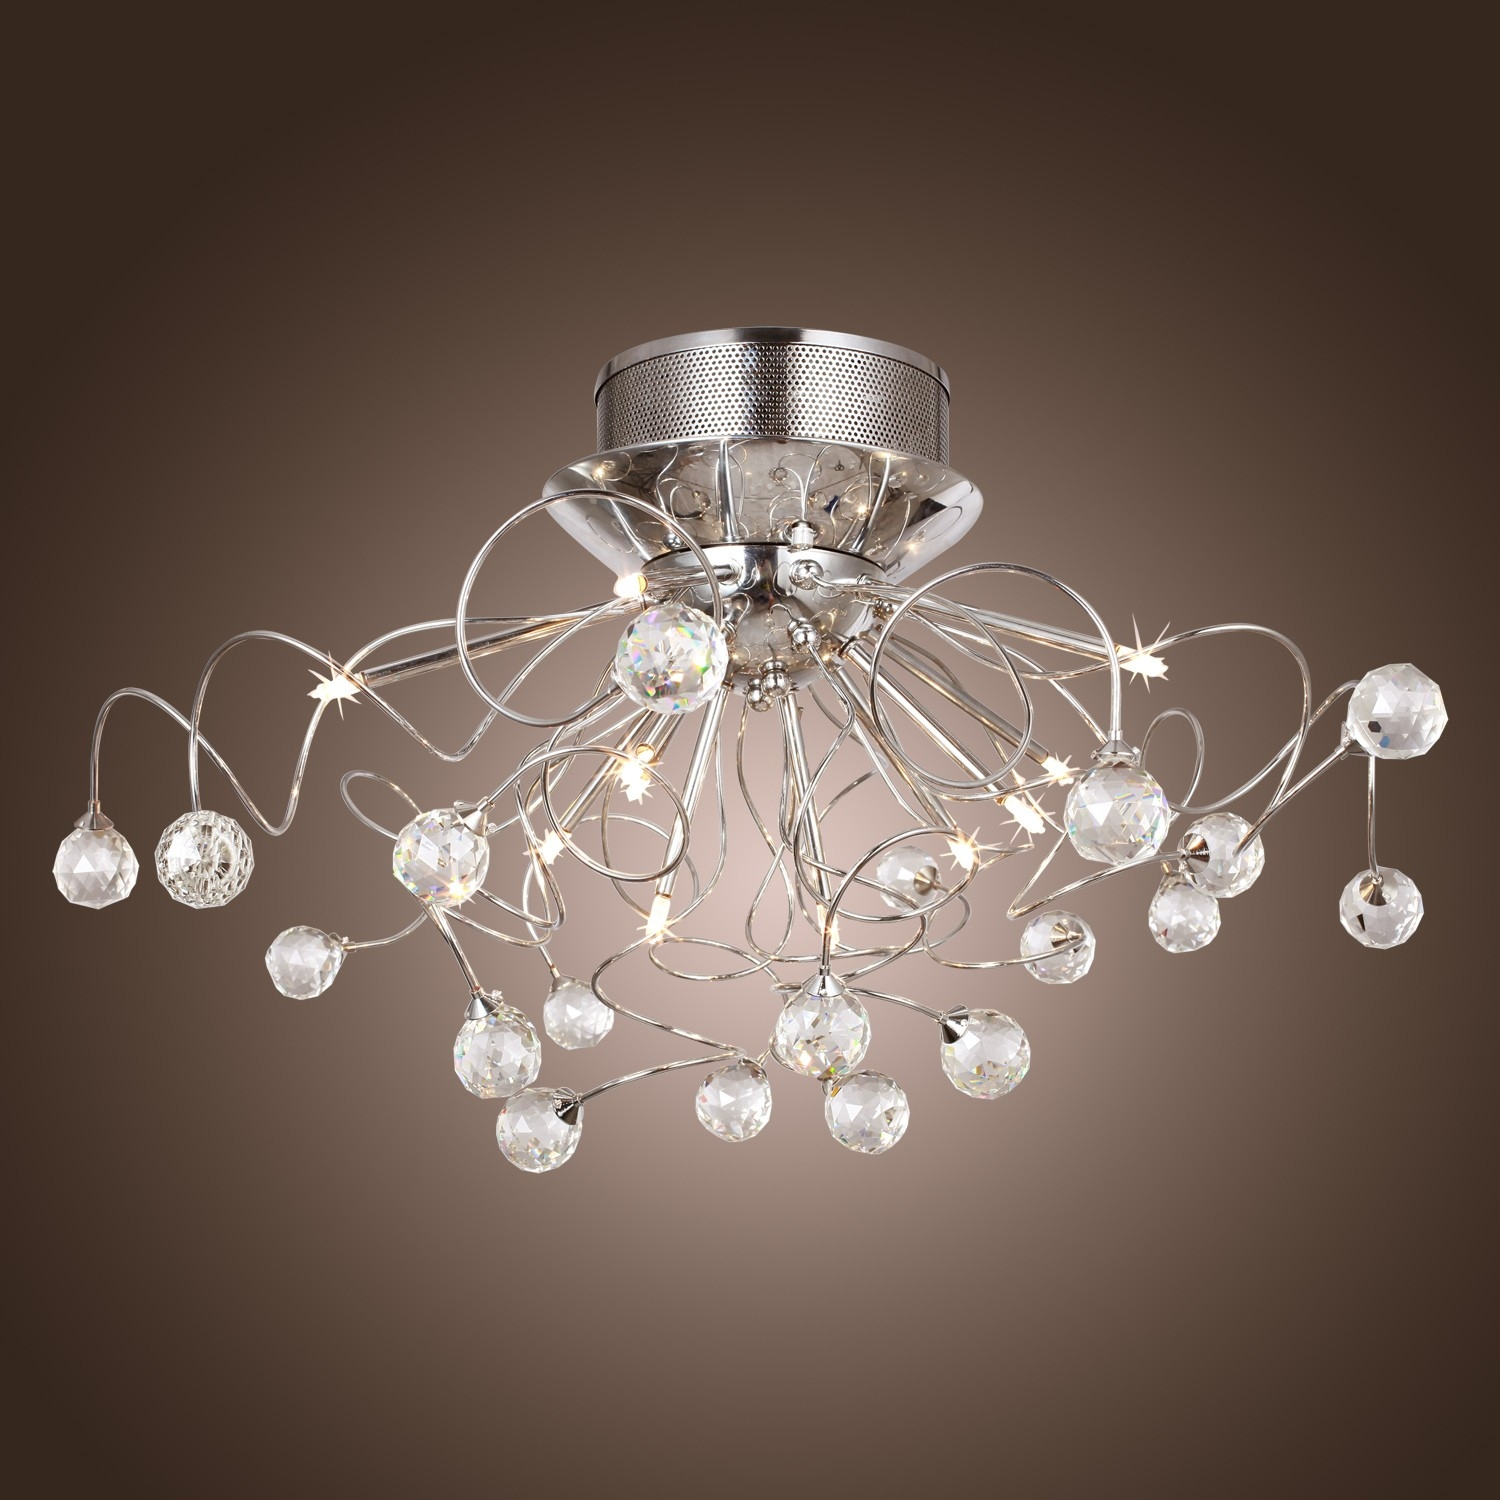 Modern Crystal Chandelier With 11 Lights Chrom Flush Mount Throughout Modern Light Chandelier (View 15 of 15)